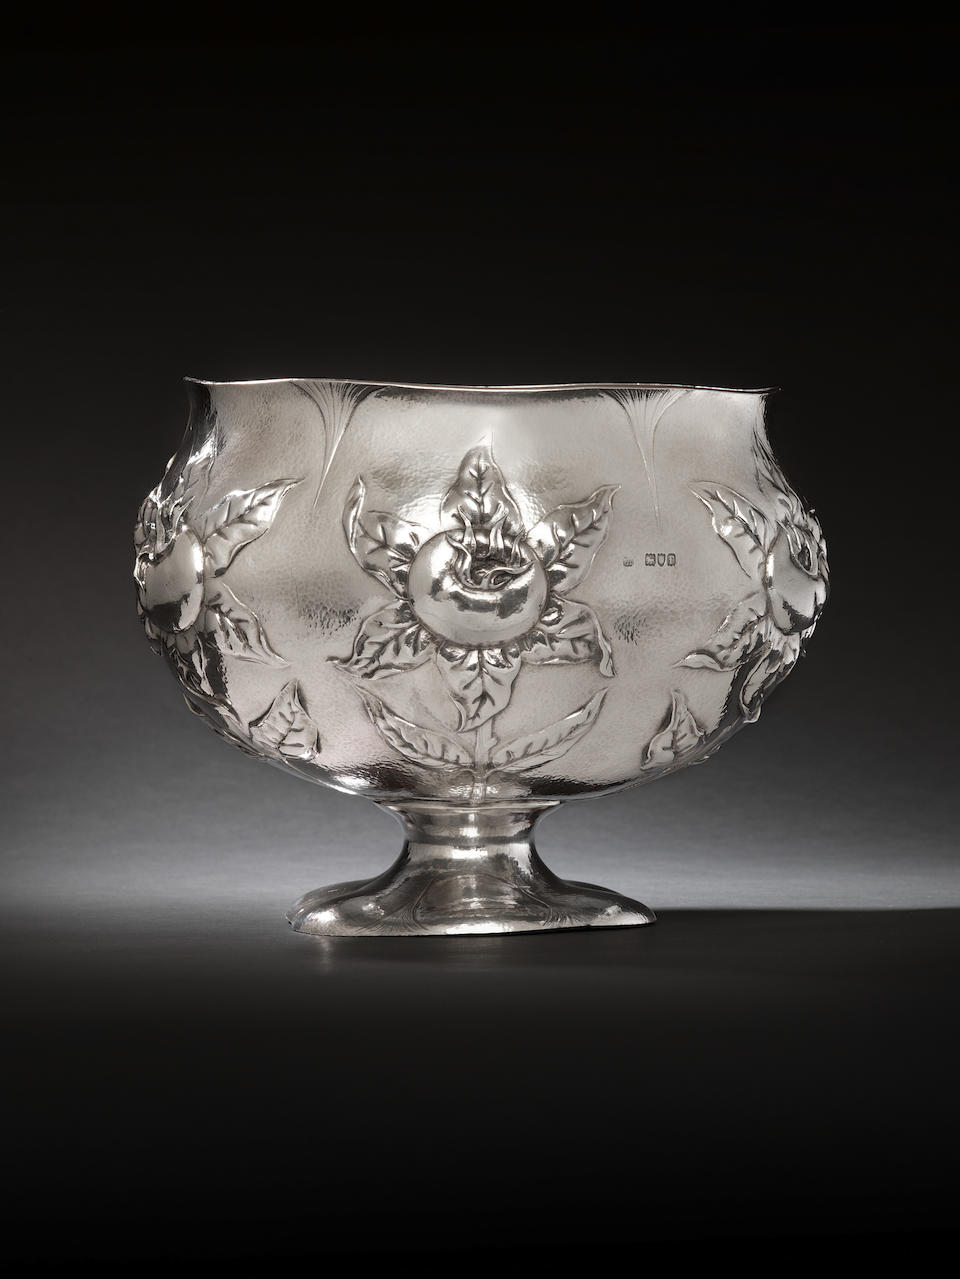 """An Edwardian silver hand wrought Arts & Crafts bowl by Gilbert Marks, London 1901, with incuse engraved facsimile signature """"Gilbert Marks"""" over """"1901"""","""